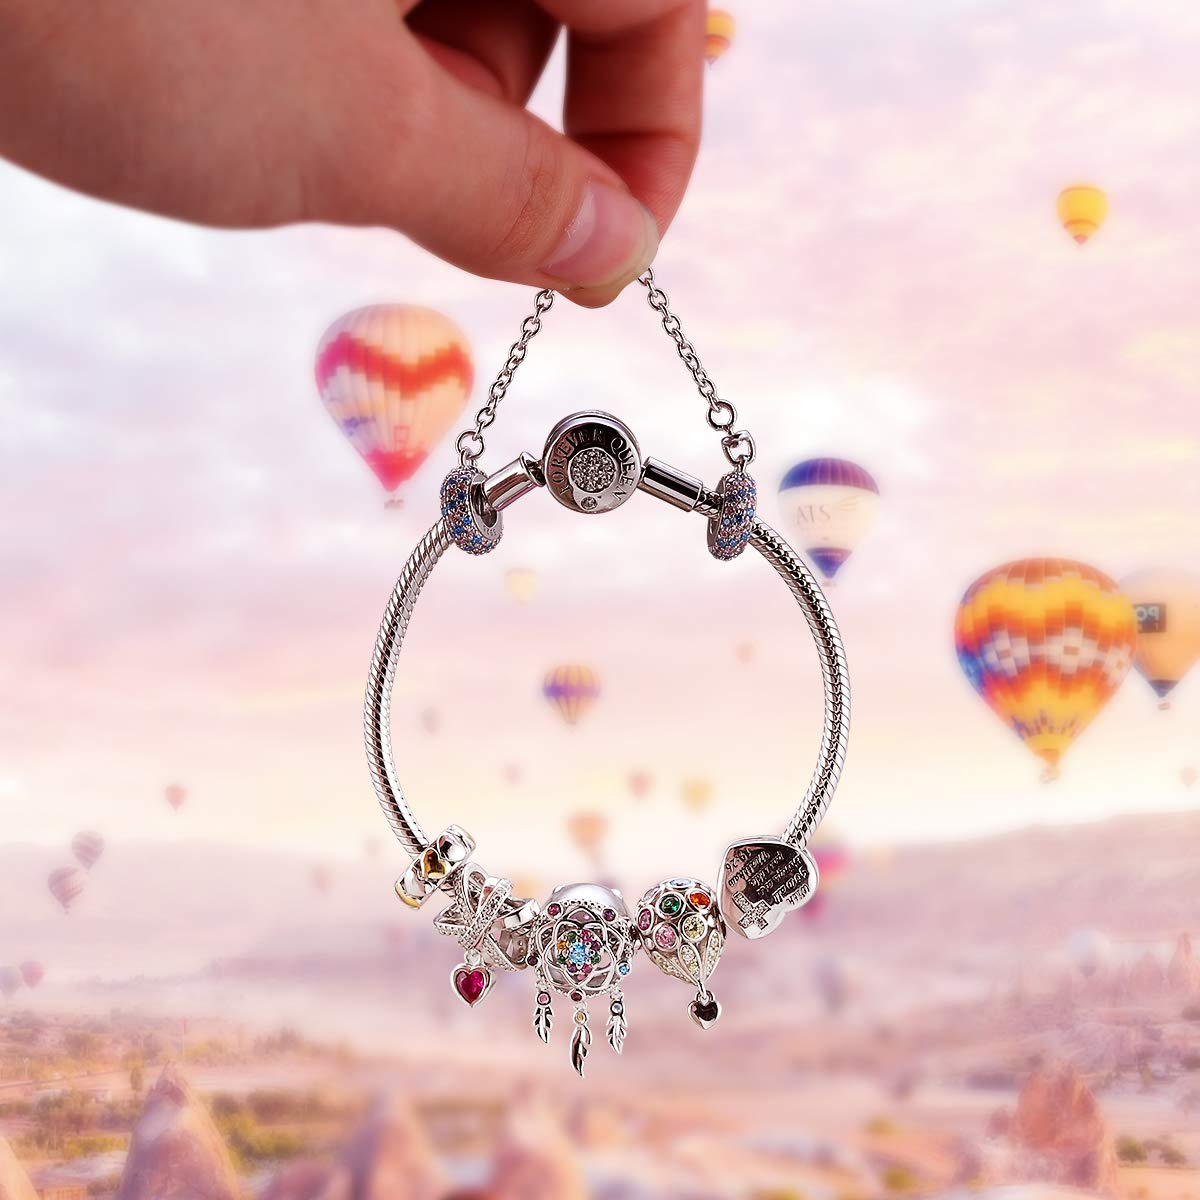 FOREVER QUEEN Charm Bracelet Fit Pandora Charms 925 Sterling Silver Basic Snake Chain Bracelet for Women Girls, Signature Bracelet with Sparkling Round Clasp Charm Clear CZ FQ00016 by FOREVER QUEEN (Image #6)